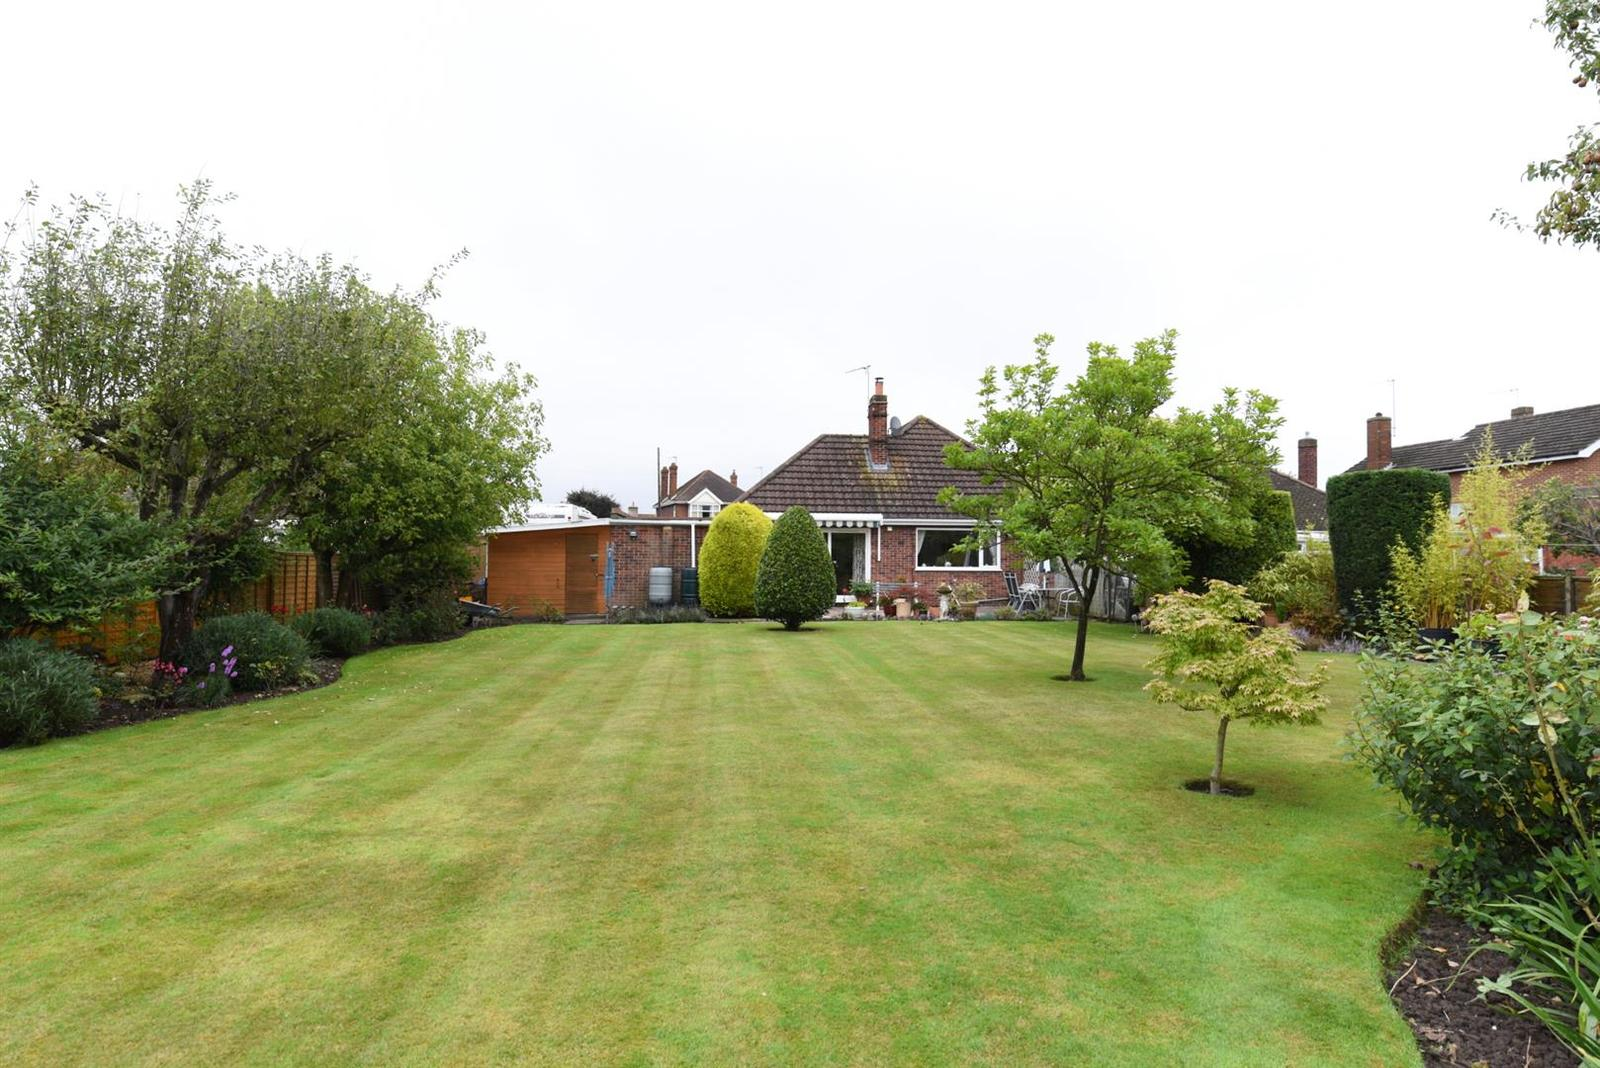 3 Bedrooms Bungalow for sale in Freiston Road, Boston